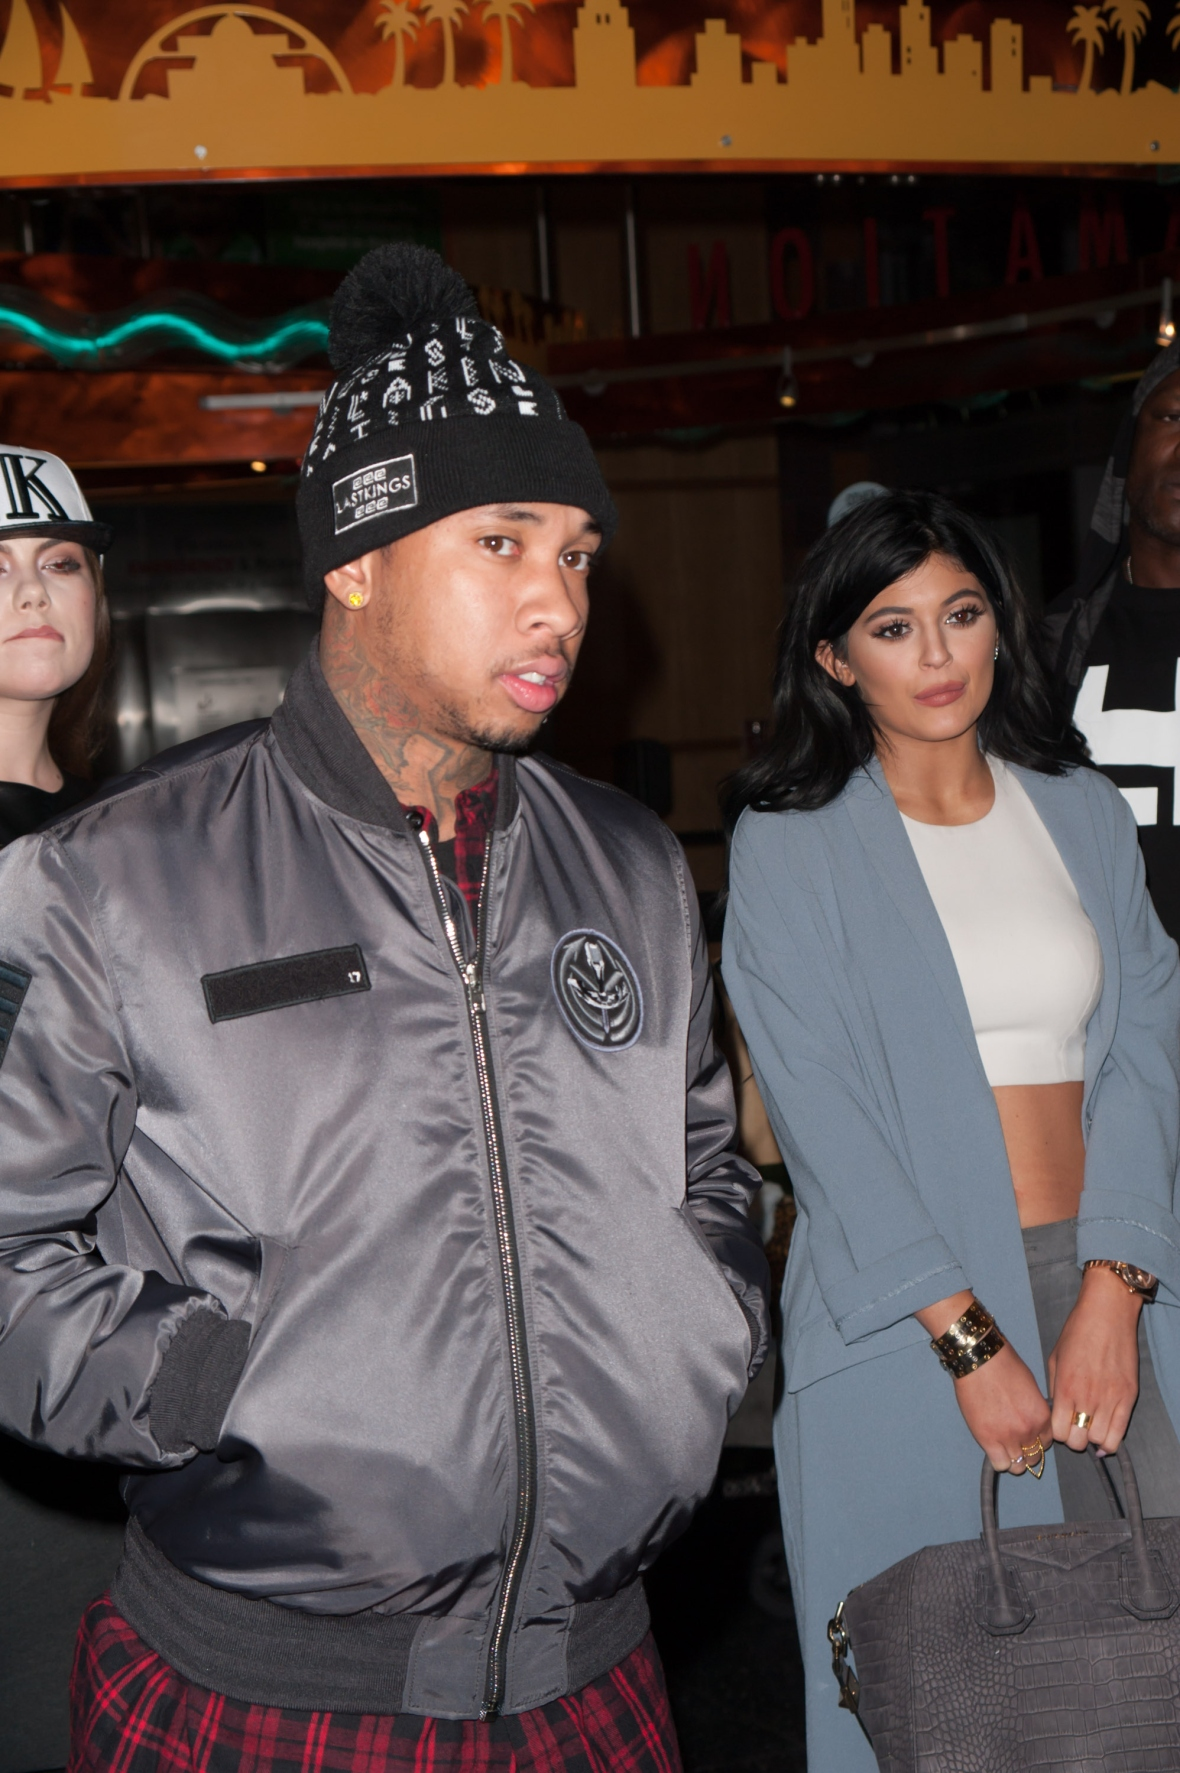 kylie-jenner-tyga-legal-relationship-vacation-money-show